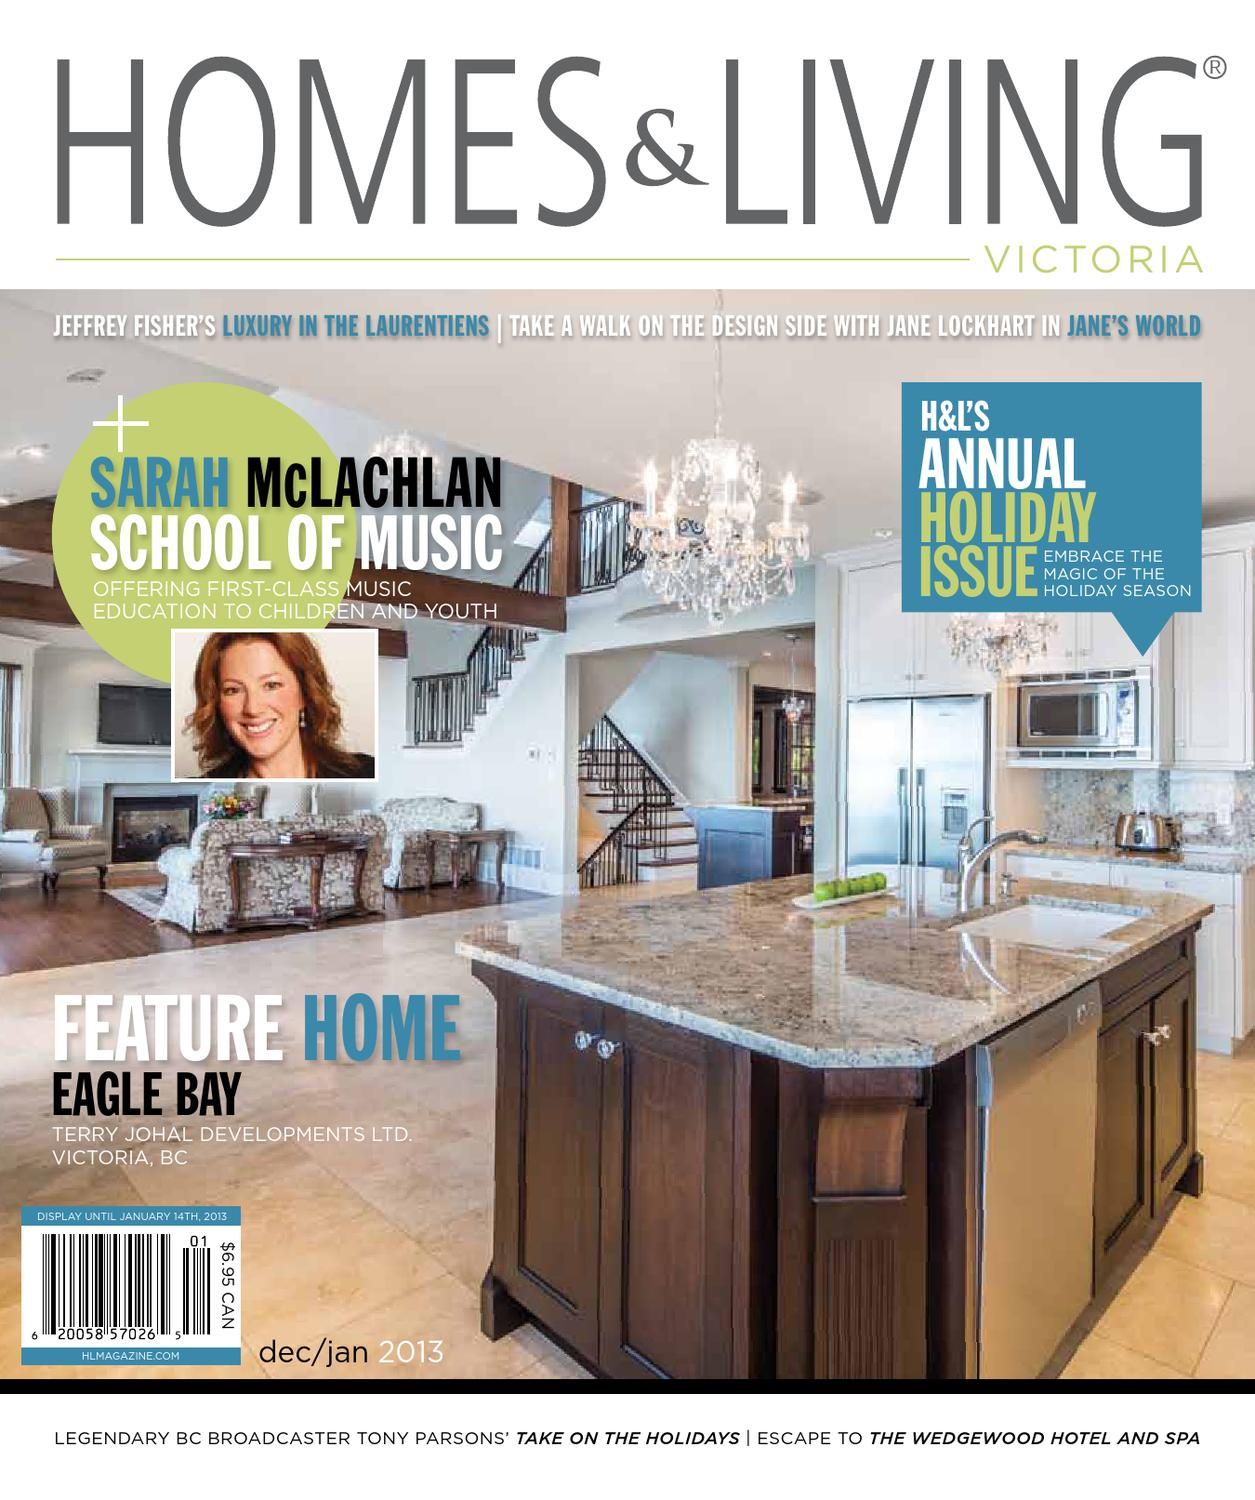 homes & living victoria dec/jan 2013 issue by homes & living